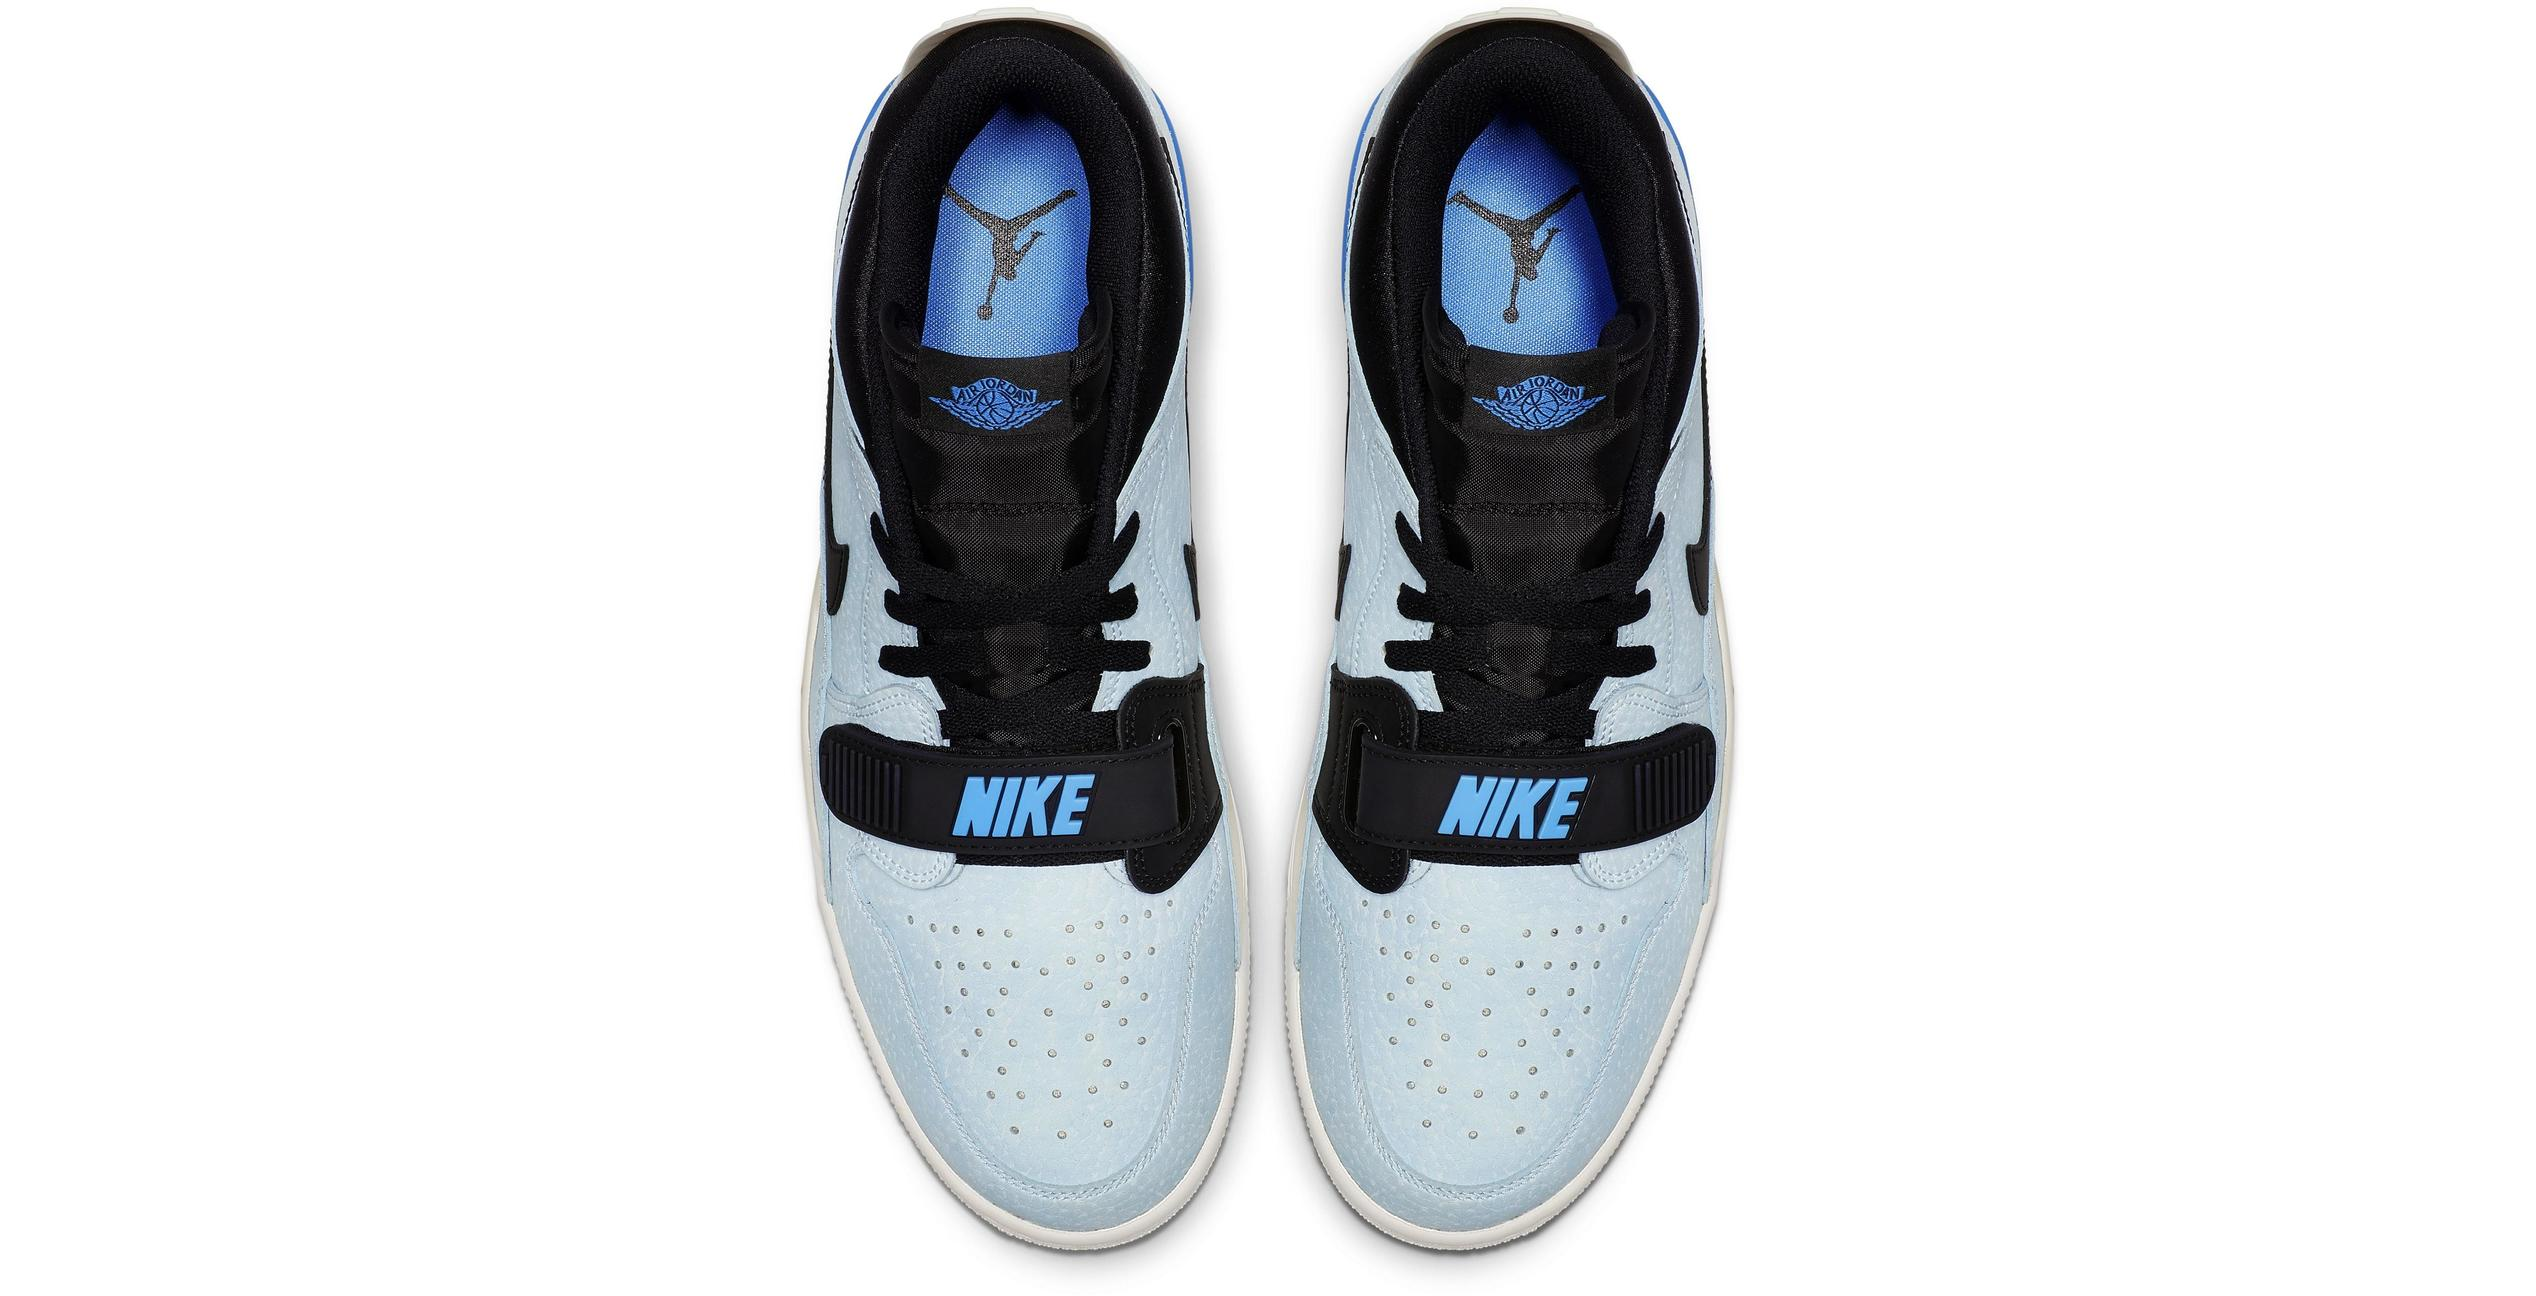 Air Jordan Legacy 312 Low Pale Blue/Black/Sail/University Blue